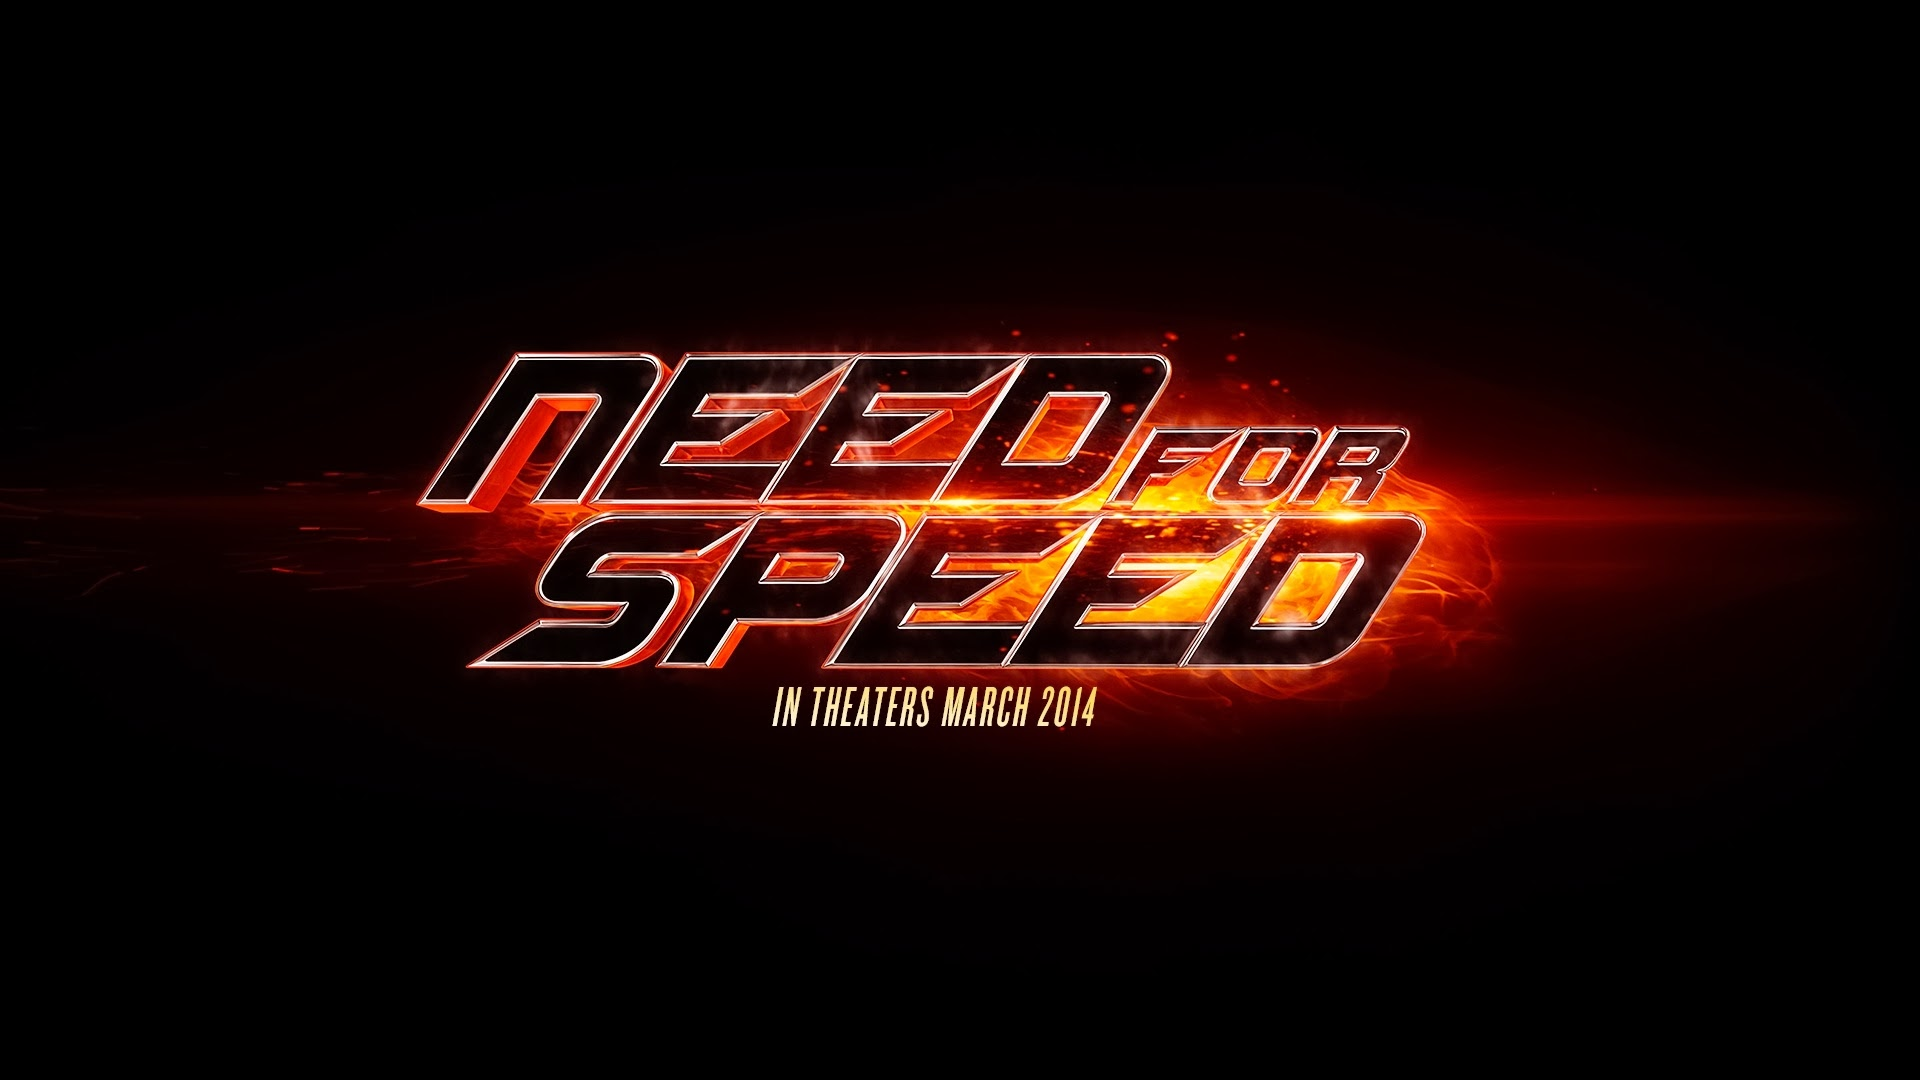 Need for speed desktop wallpapers wallpaper high for Need for speed wallpaper